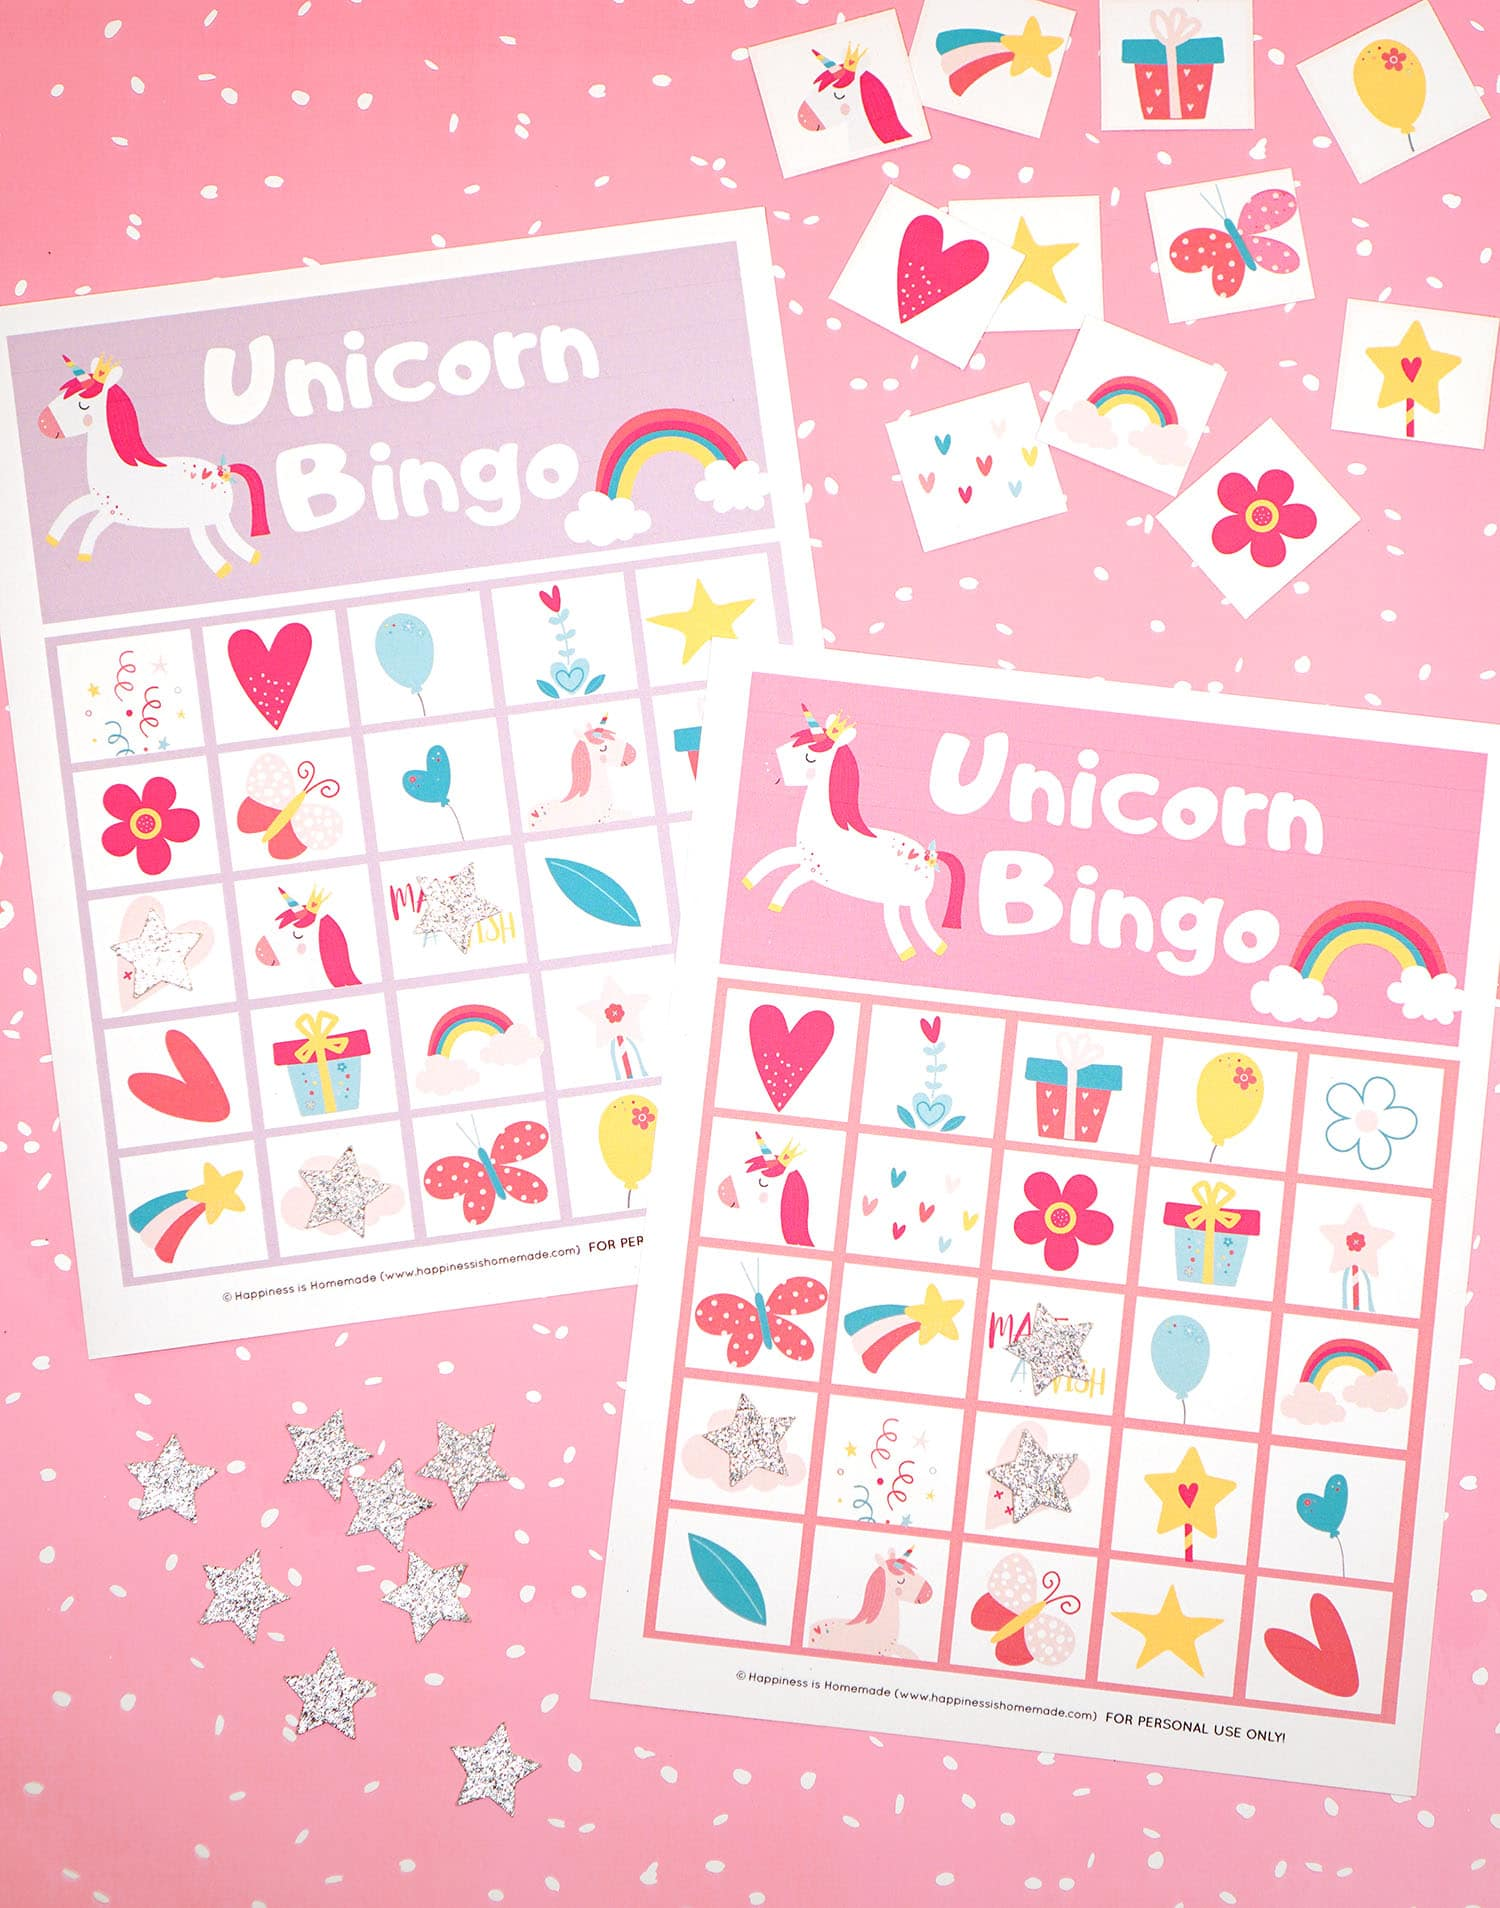 Printable Unicorn Bingo Game Cards on pink background with silver star markers and calling cards